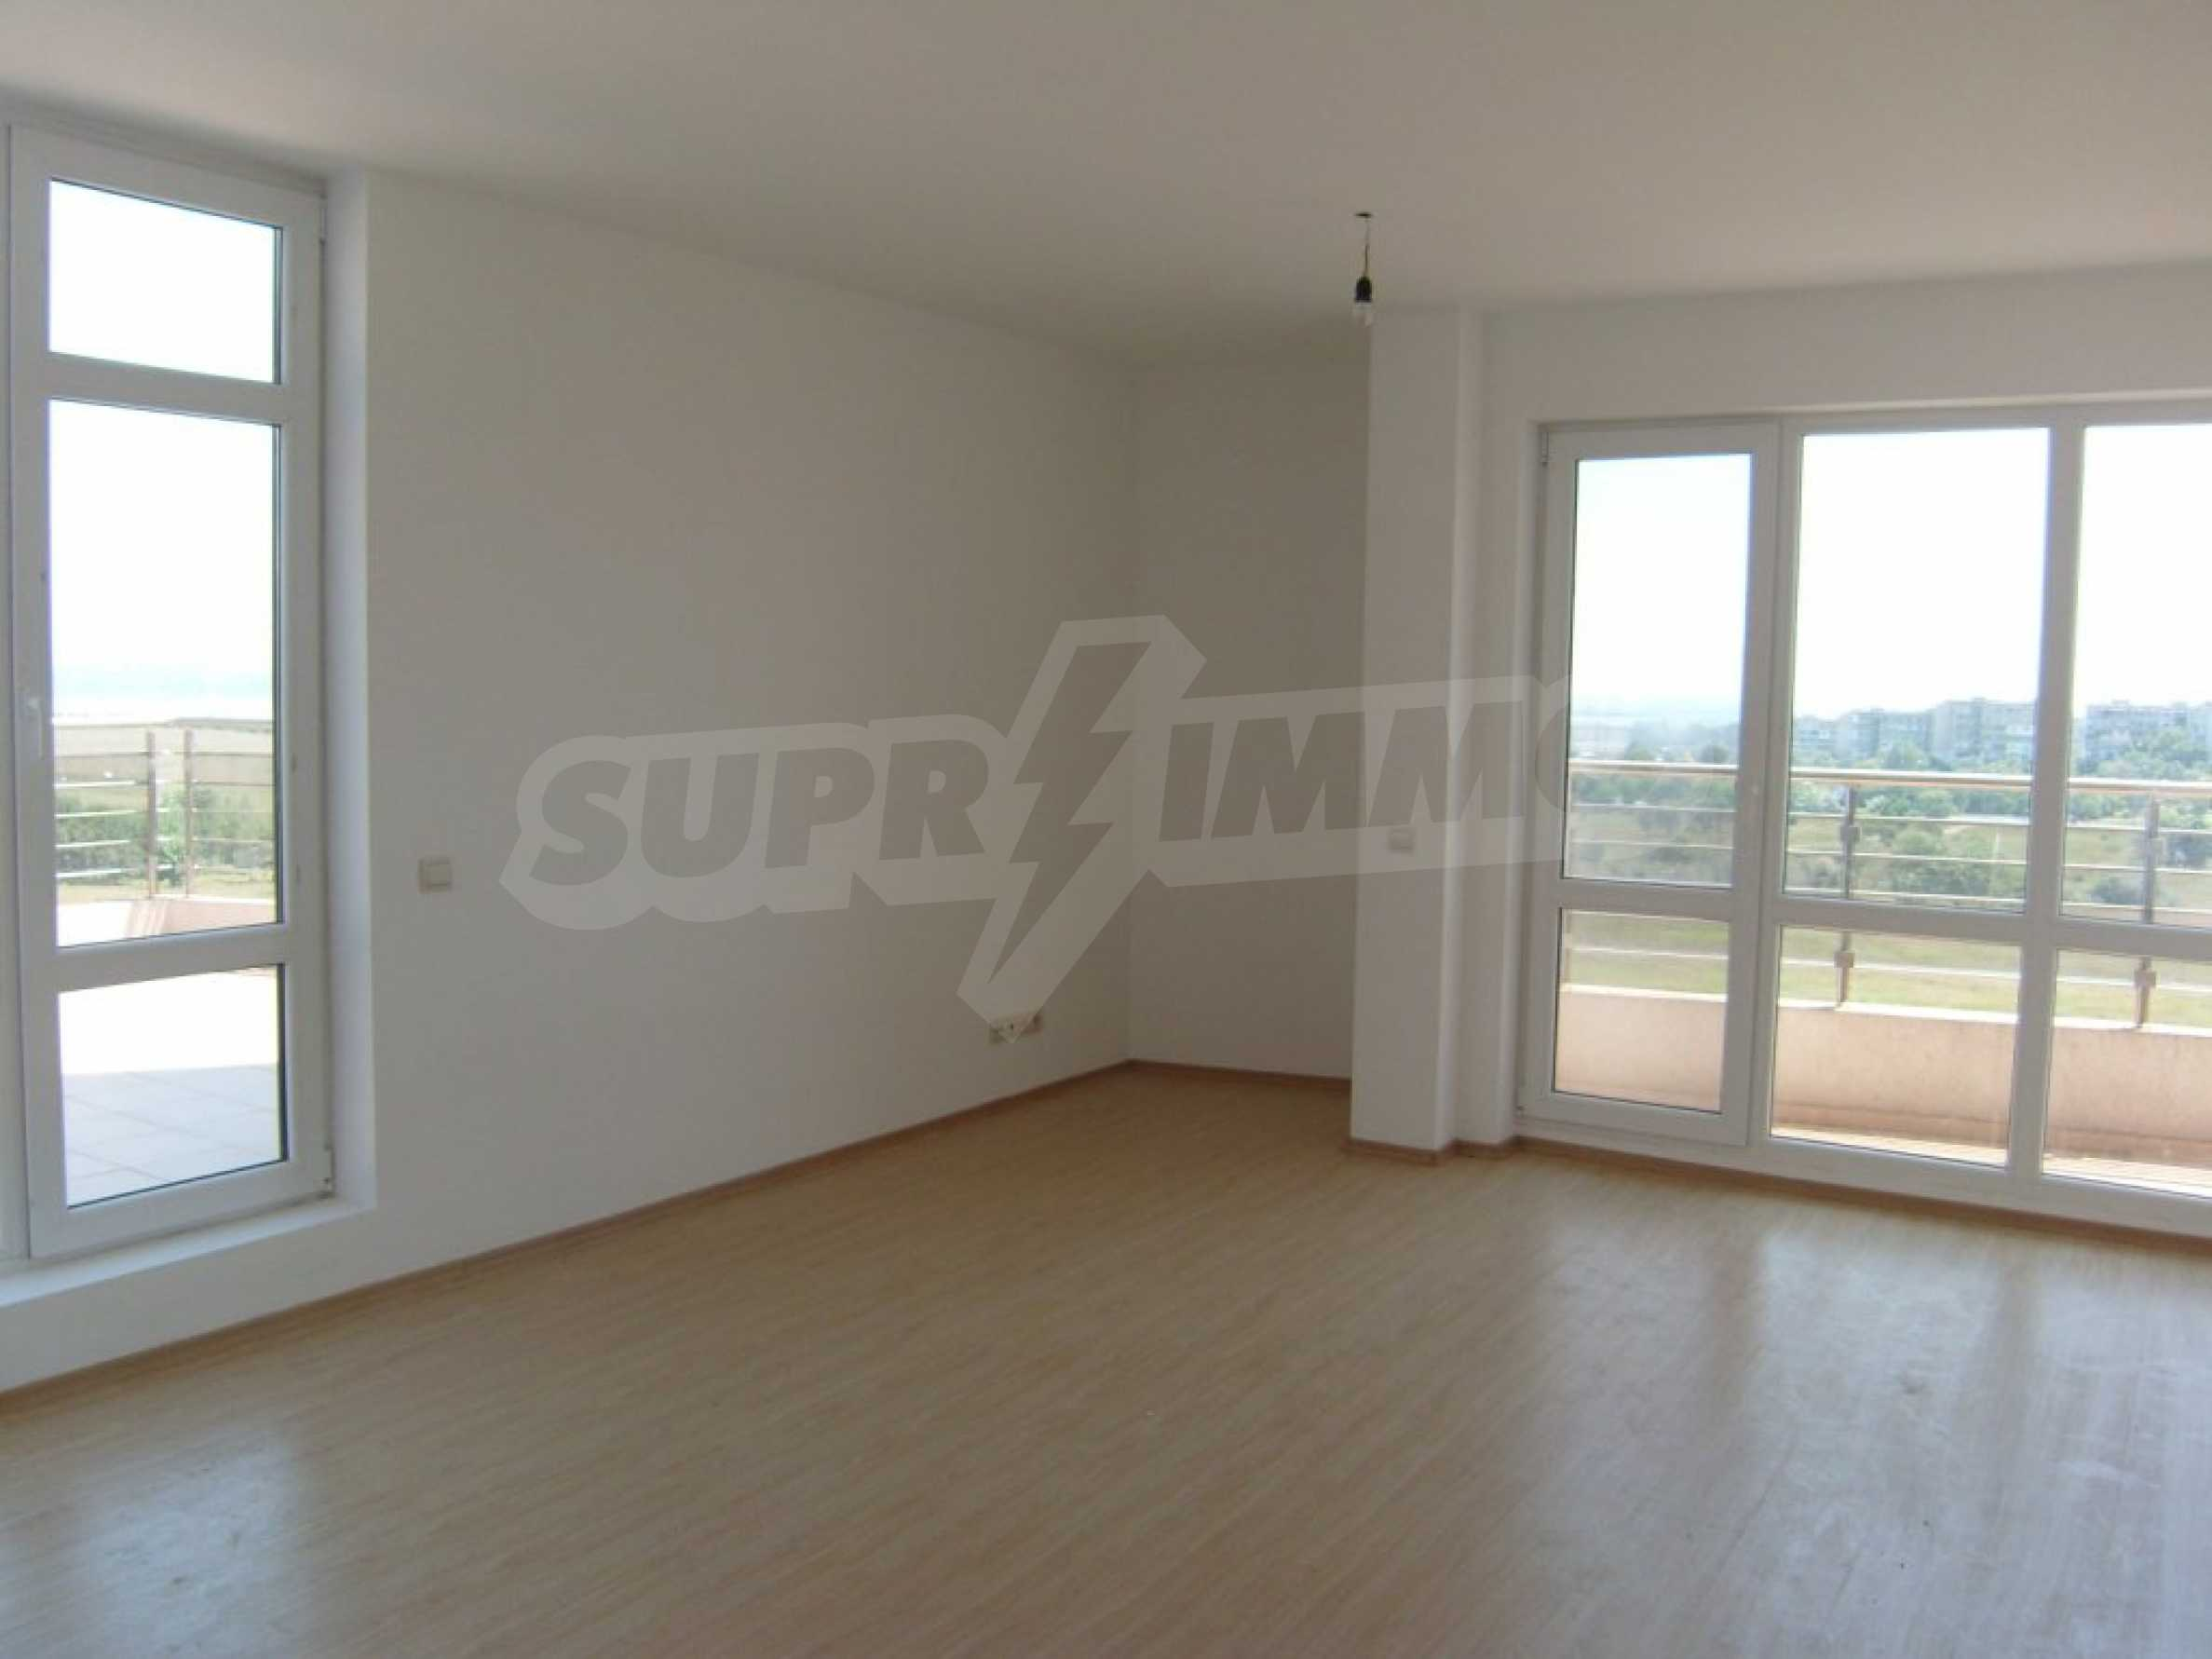 Sunny Hill - luxury residential complex in Burgas 15